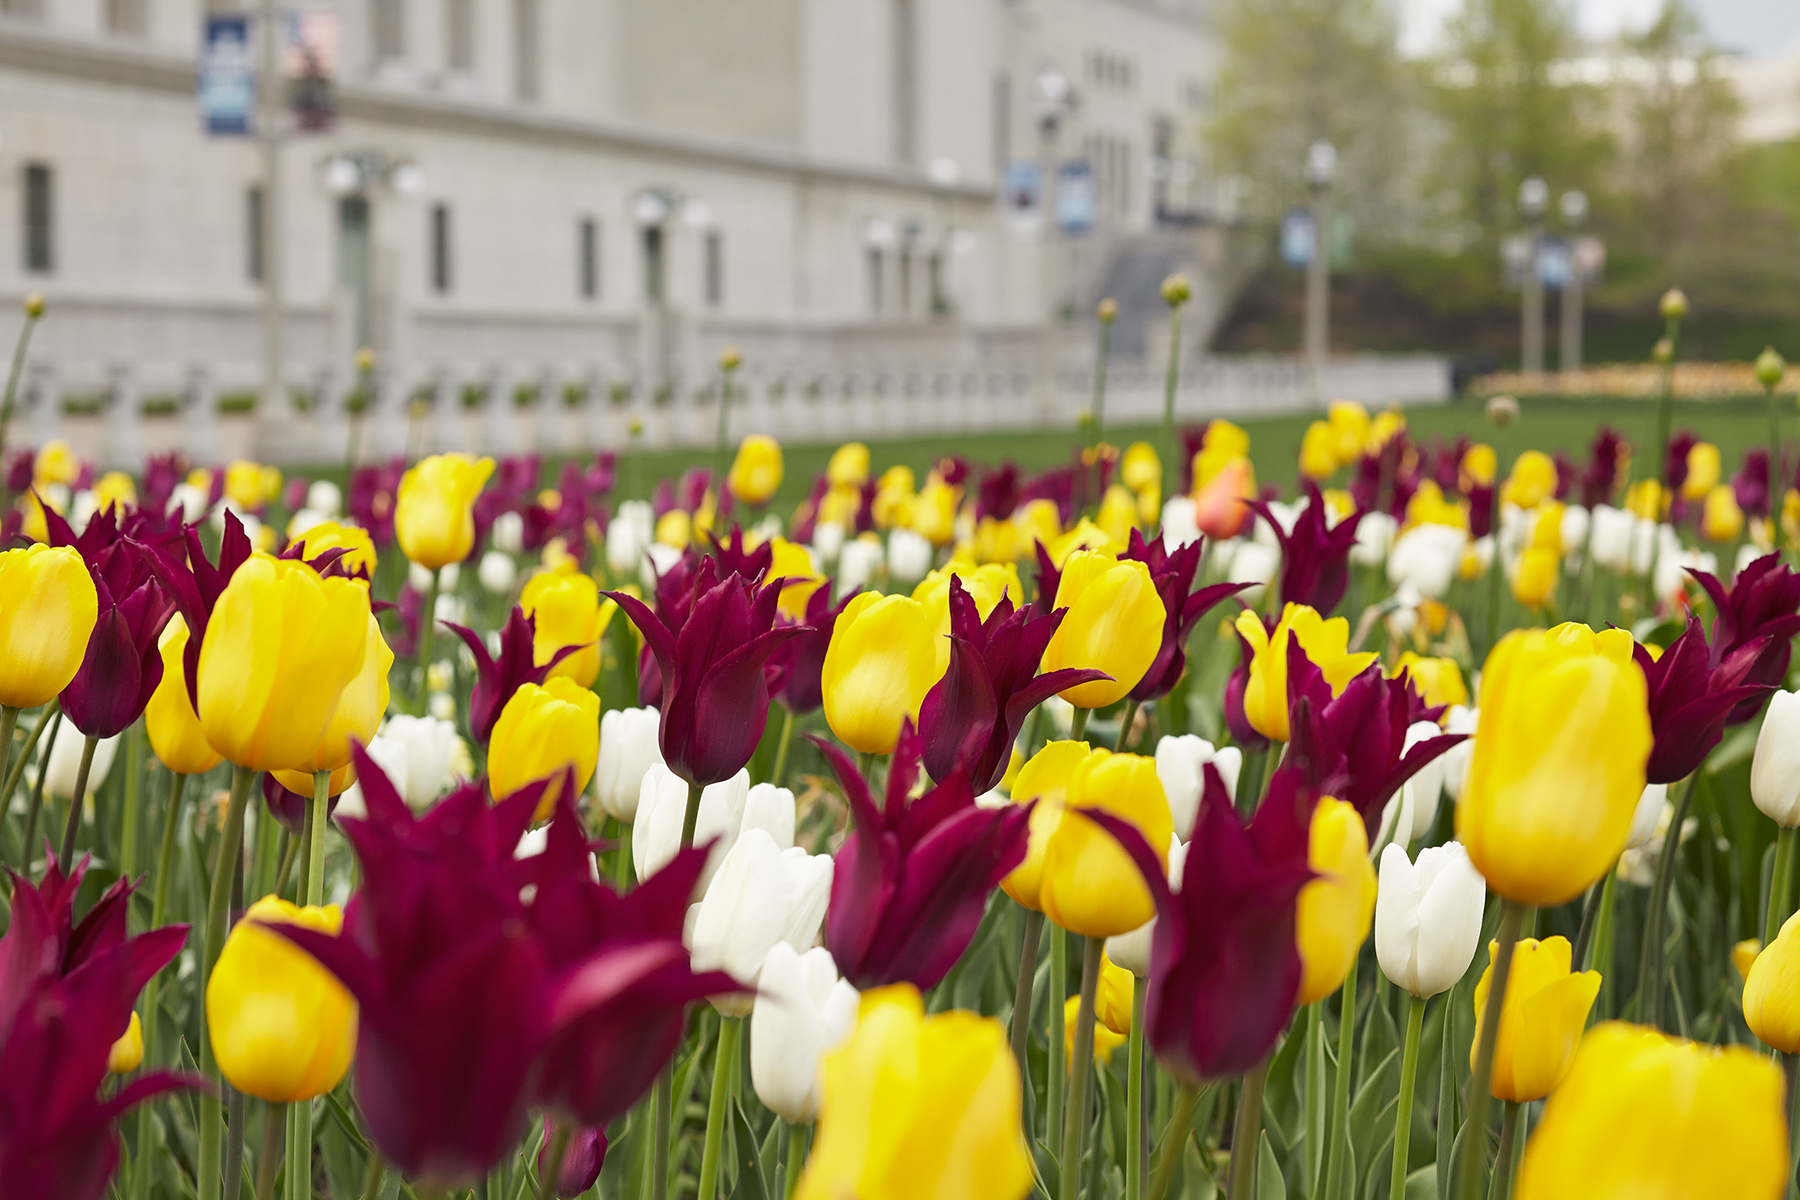 010_Christy_Webber_Soldier_Field_Tulips_MG_7753.jpg